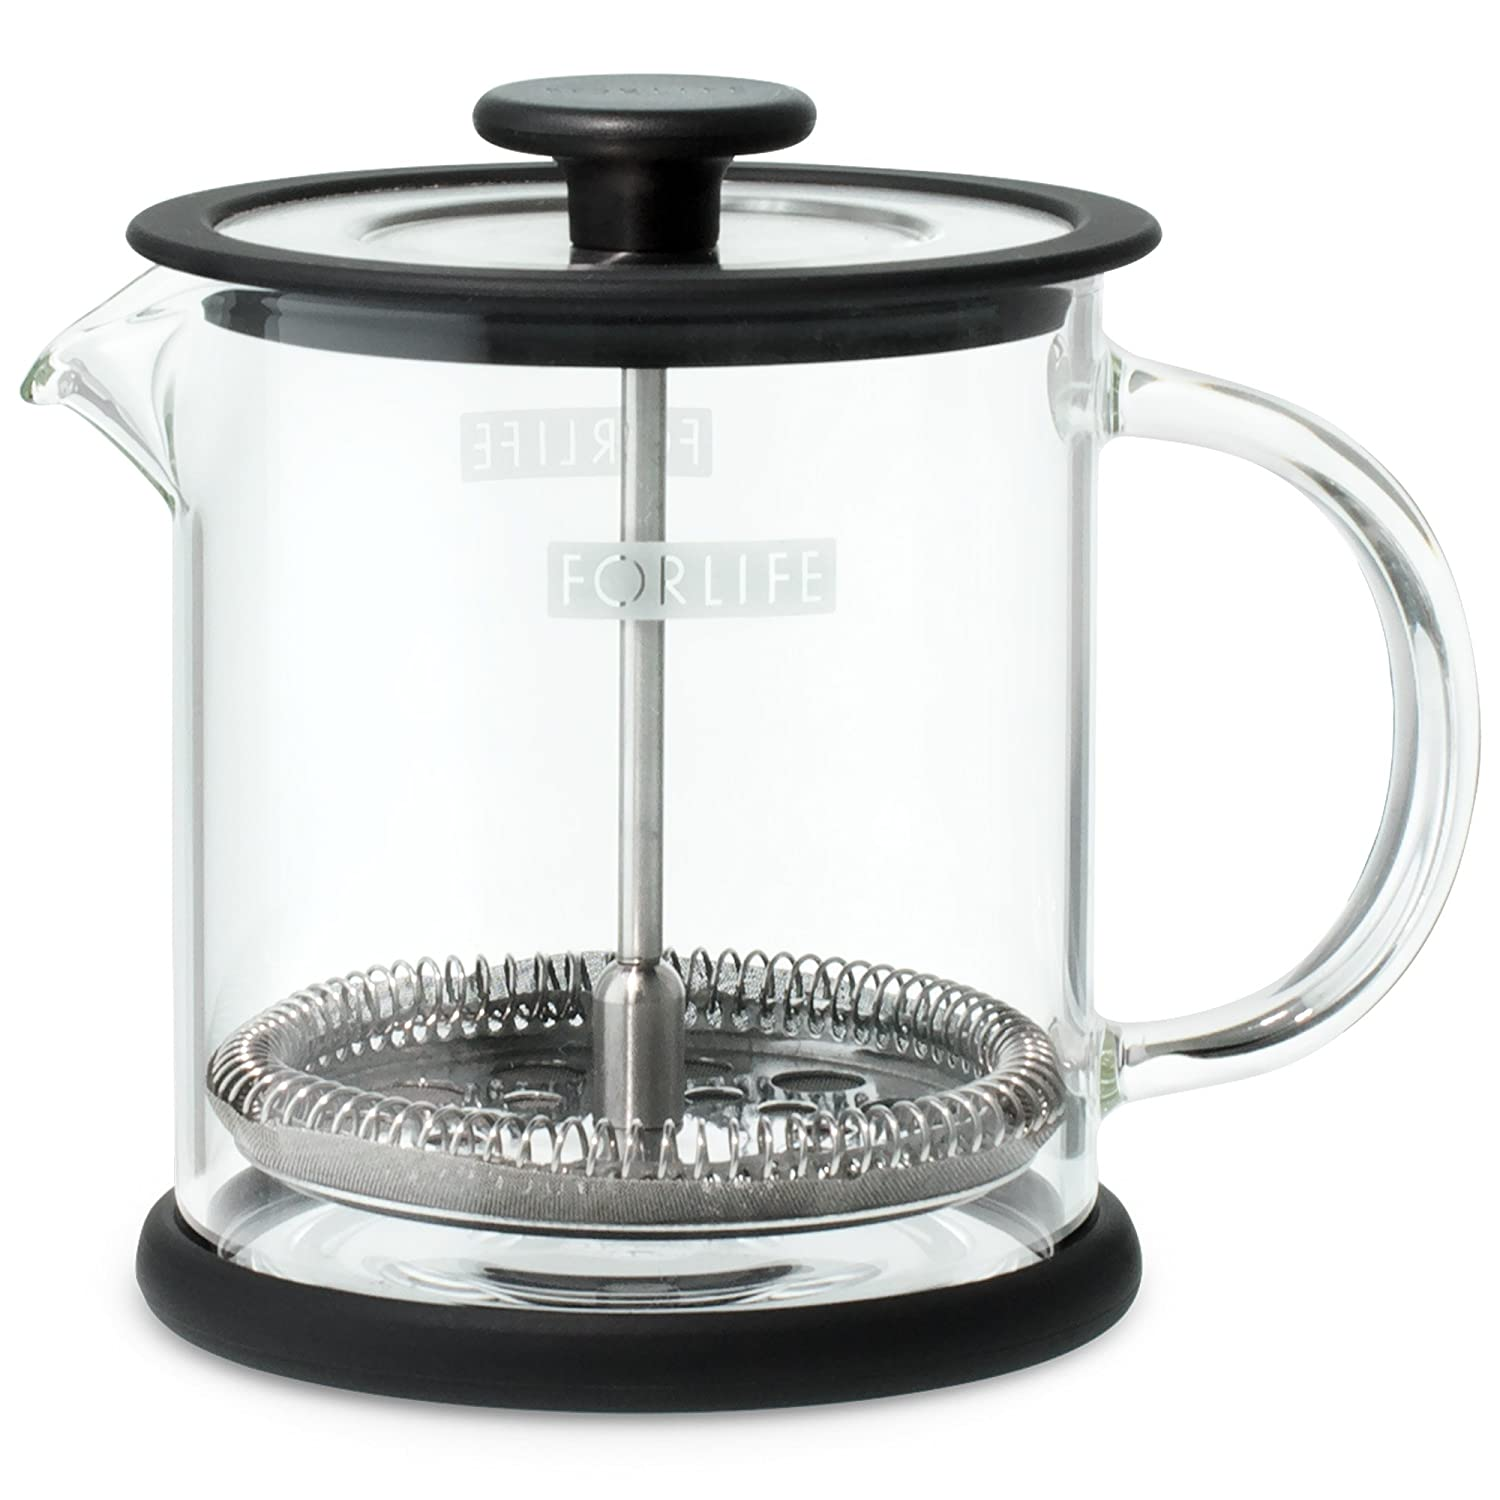 FORLIFE Cafe Style Glass Coffee Tea Press, 16-Ounce, Black